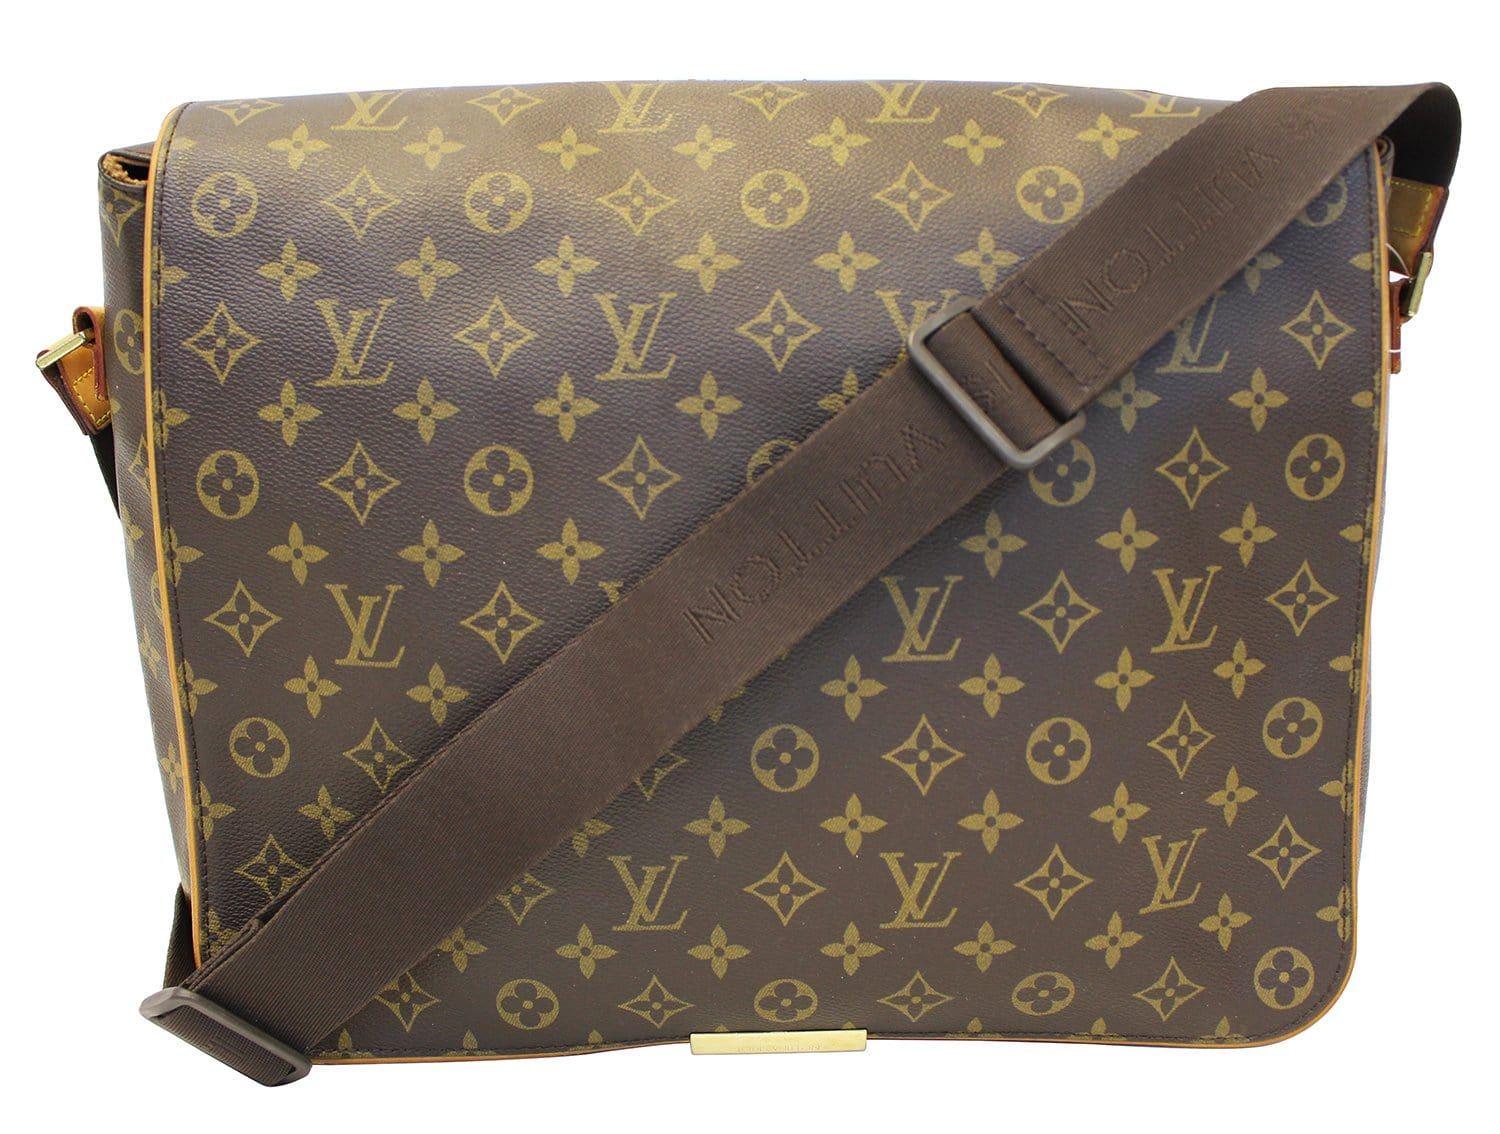 30deeba721b8 LOUIS VUITTON Monogram Canvas Abbesses Messenger Bag